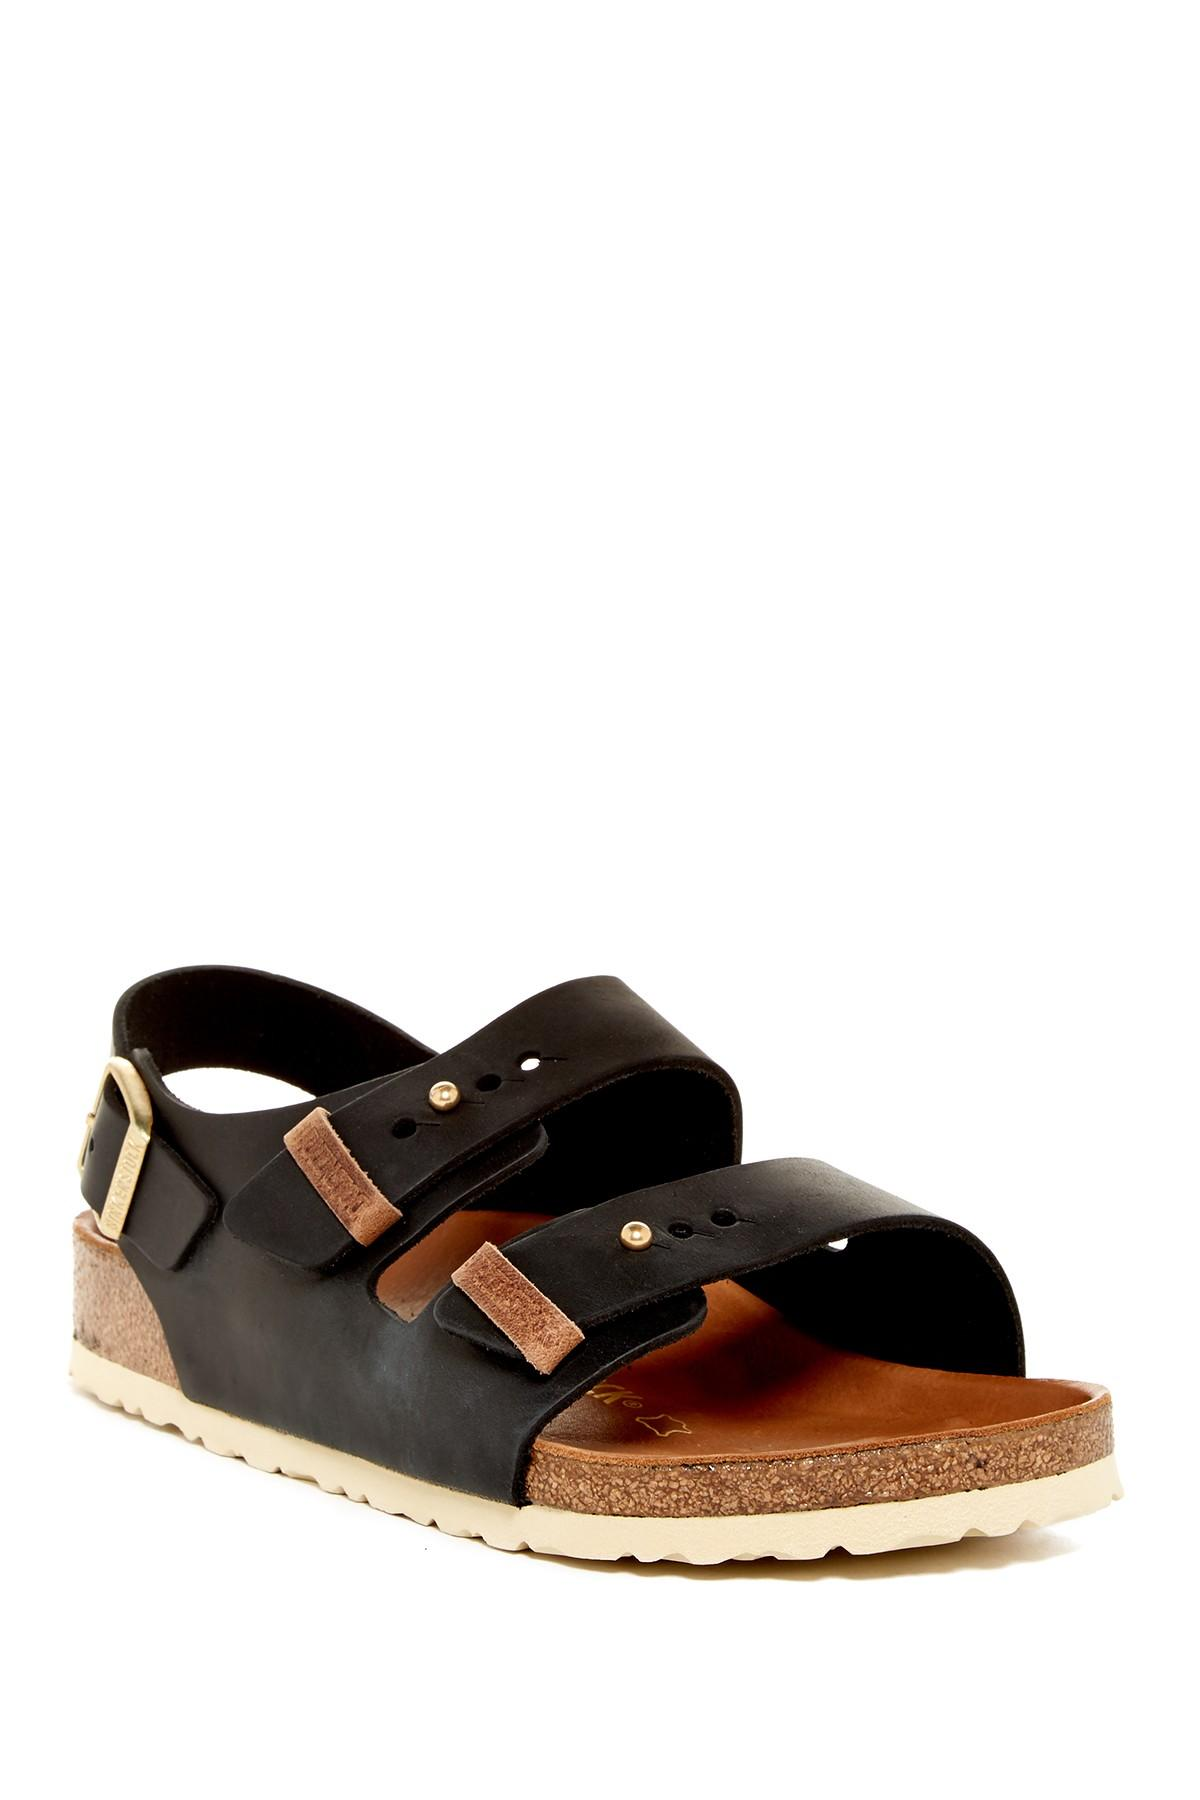 Birkenstock Arizona Lux Slide Sandal Discontinued In